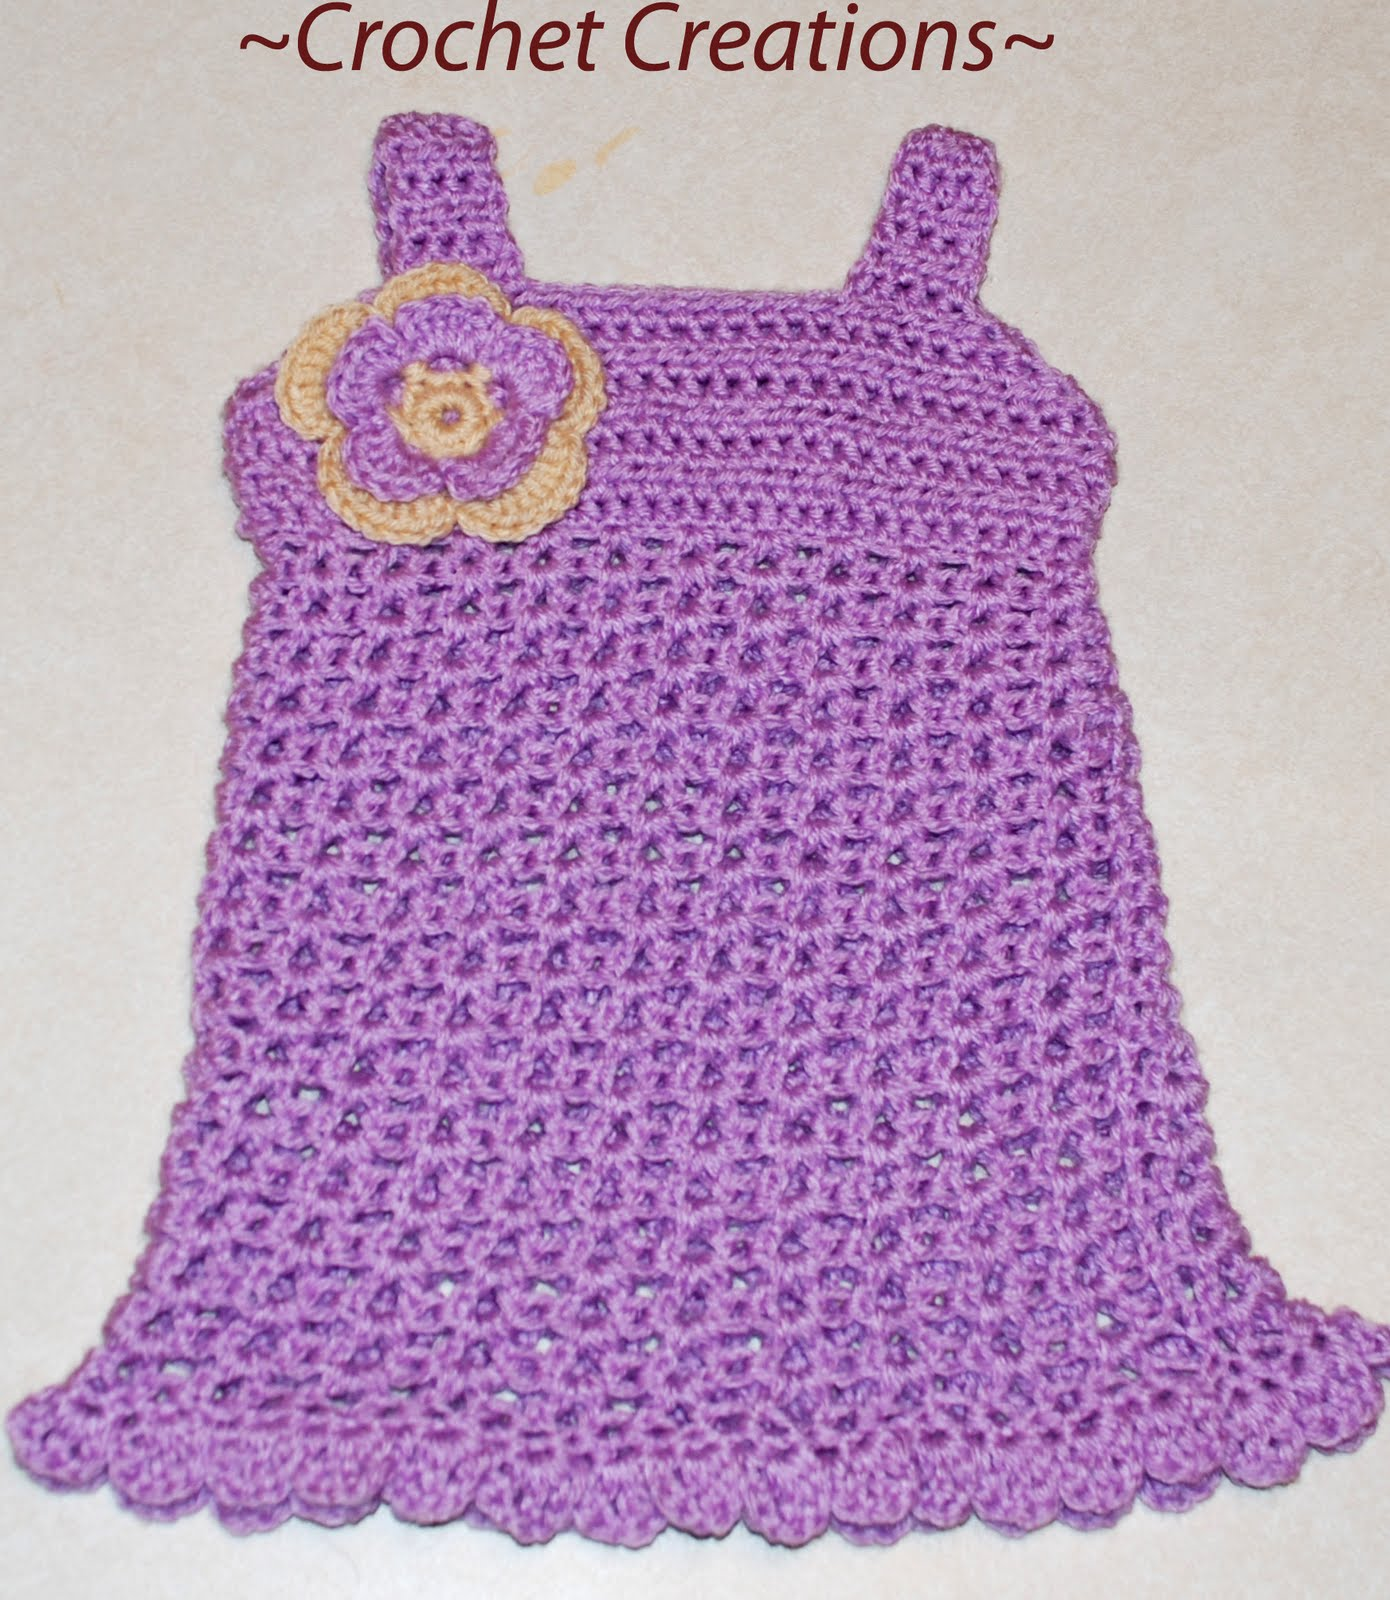 Crochet Stitches Baby Frock : ... baby dress patterns free crochet chemo cap patterns free crochet baby